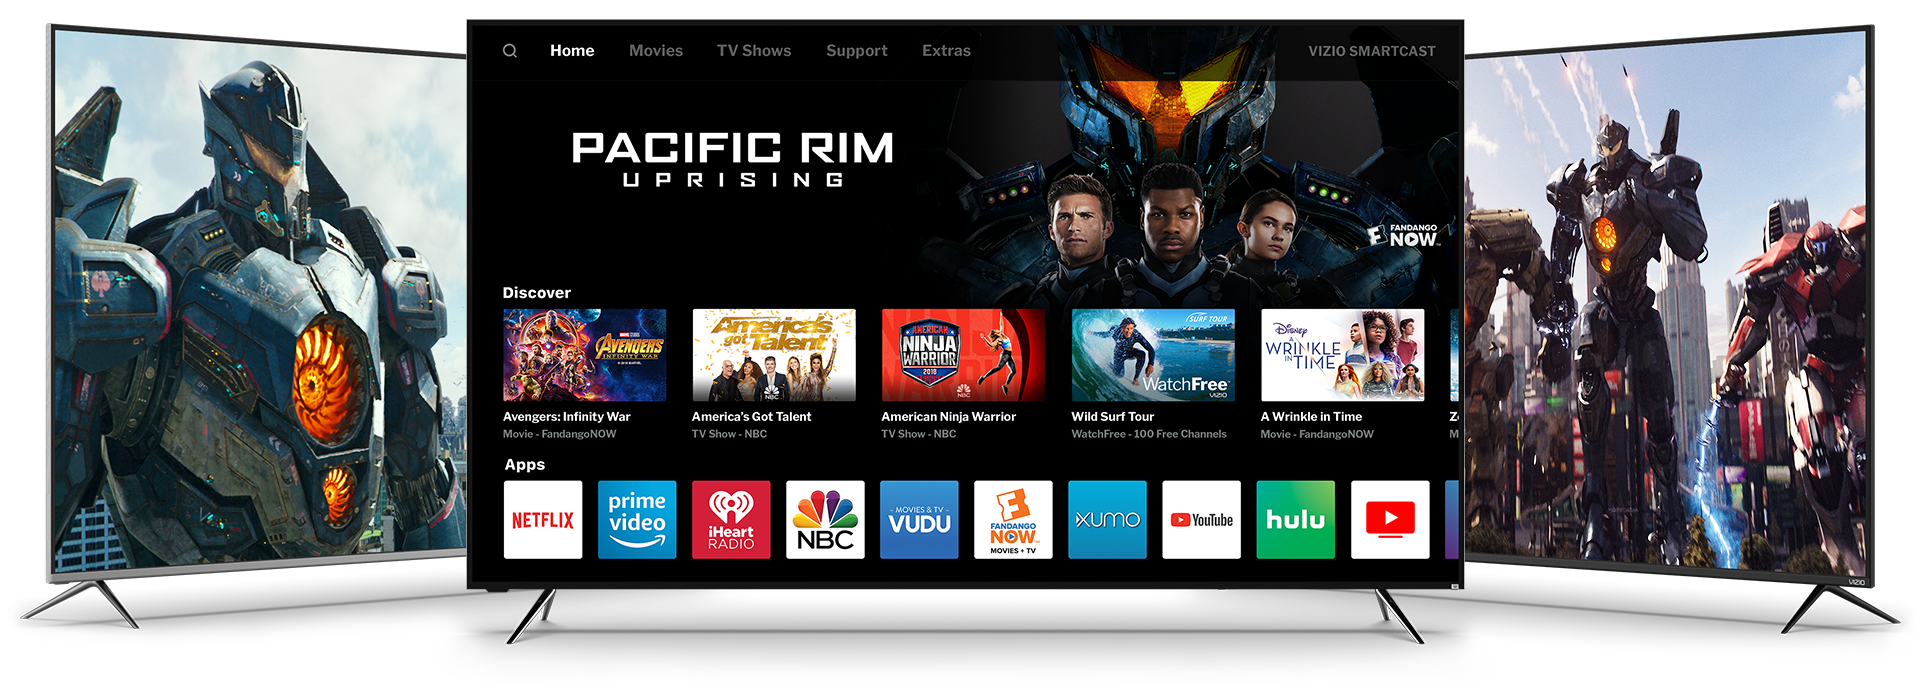 showcase-smartcast-pacific-rim